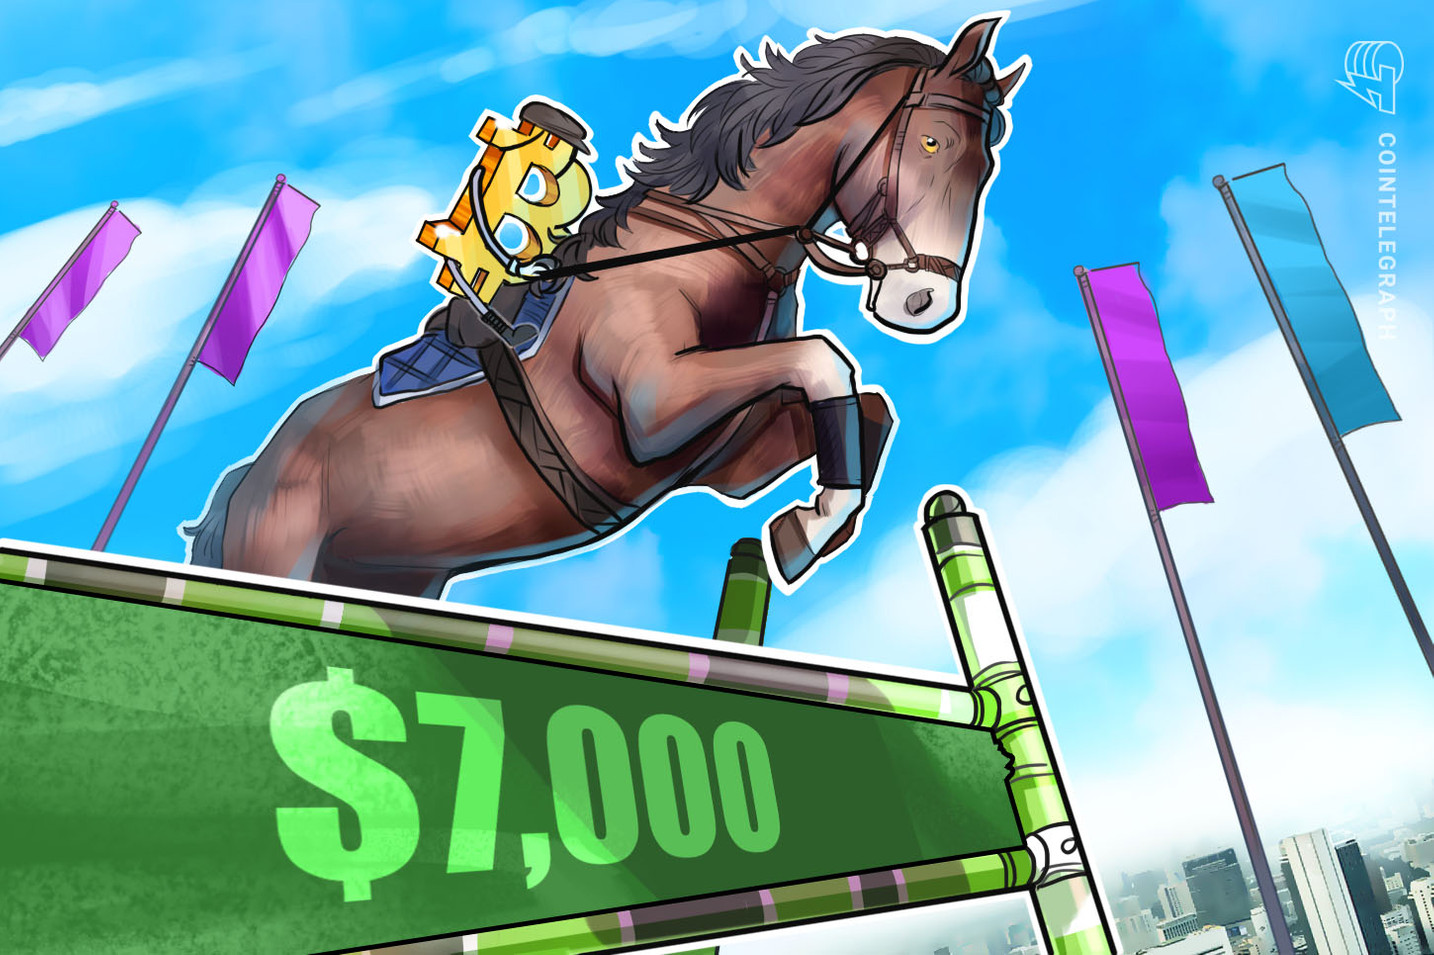 Bitcoin Price Breaks $7,000 as US Stock Market Sees Minor Uptick